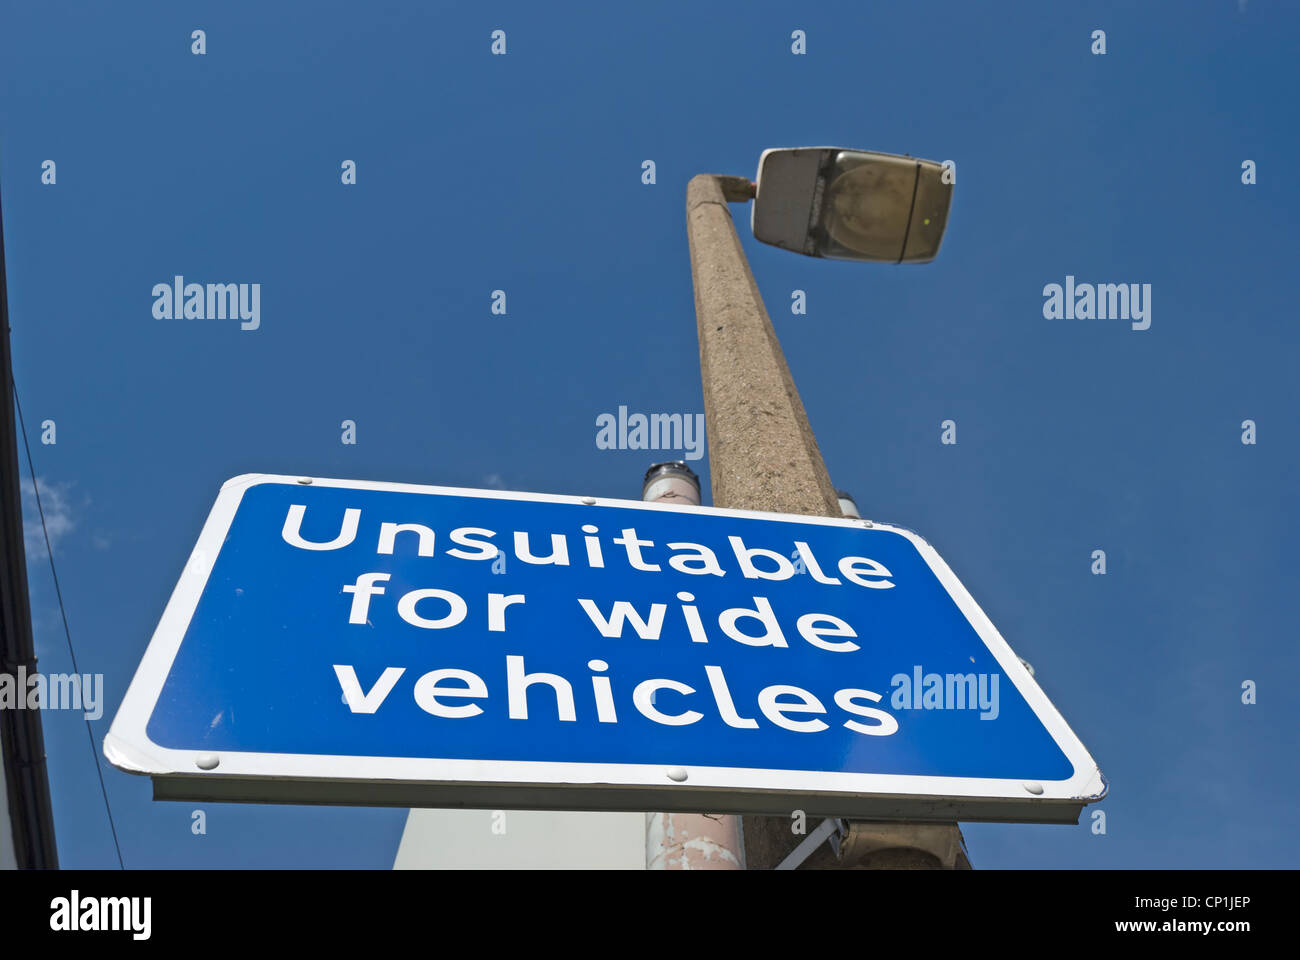 british unsuitable for wide vehicles road sign - Stock Image